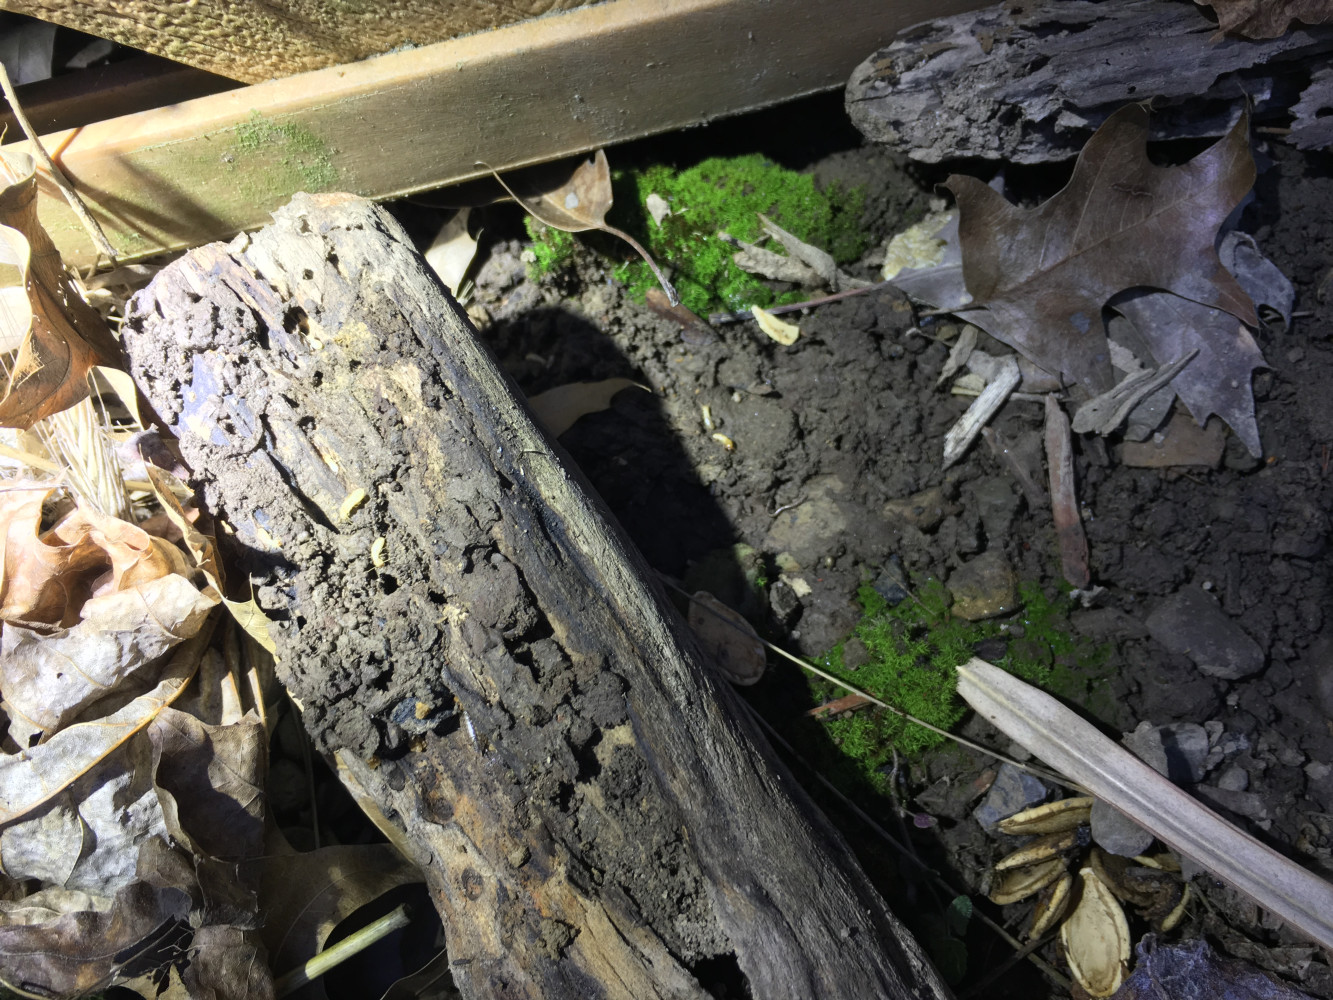 If you look closely you can see the white termite workers in the soil and on the log.